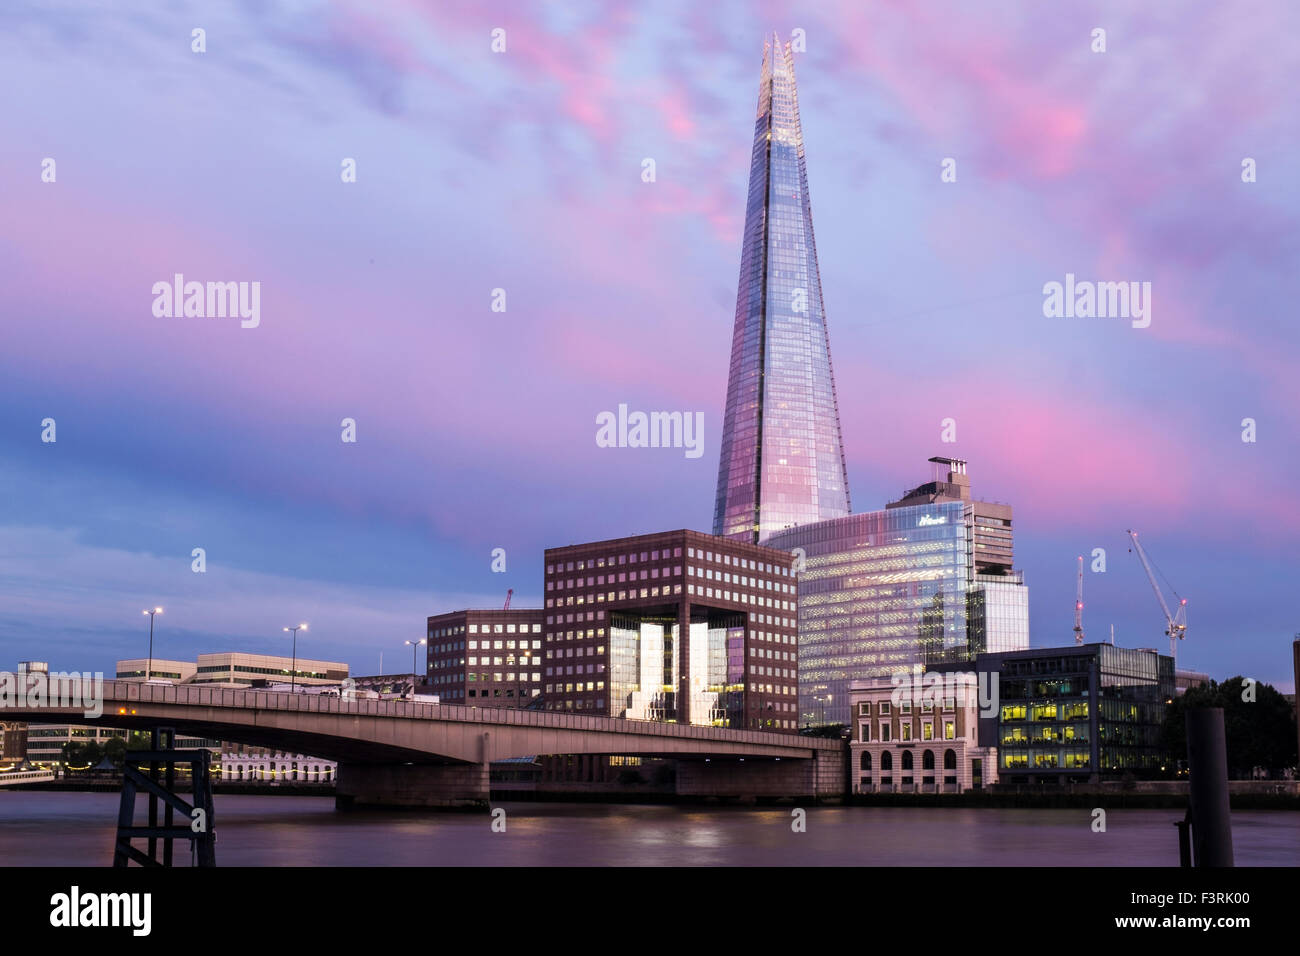 Le Shard, Southwark, Londres, Royaume-Uni Photo Stock